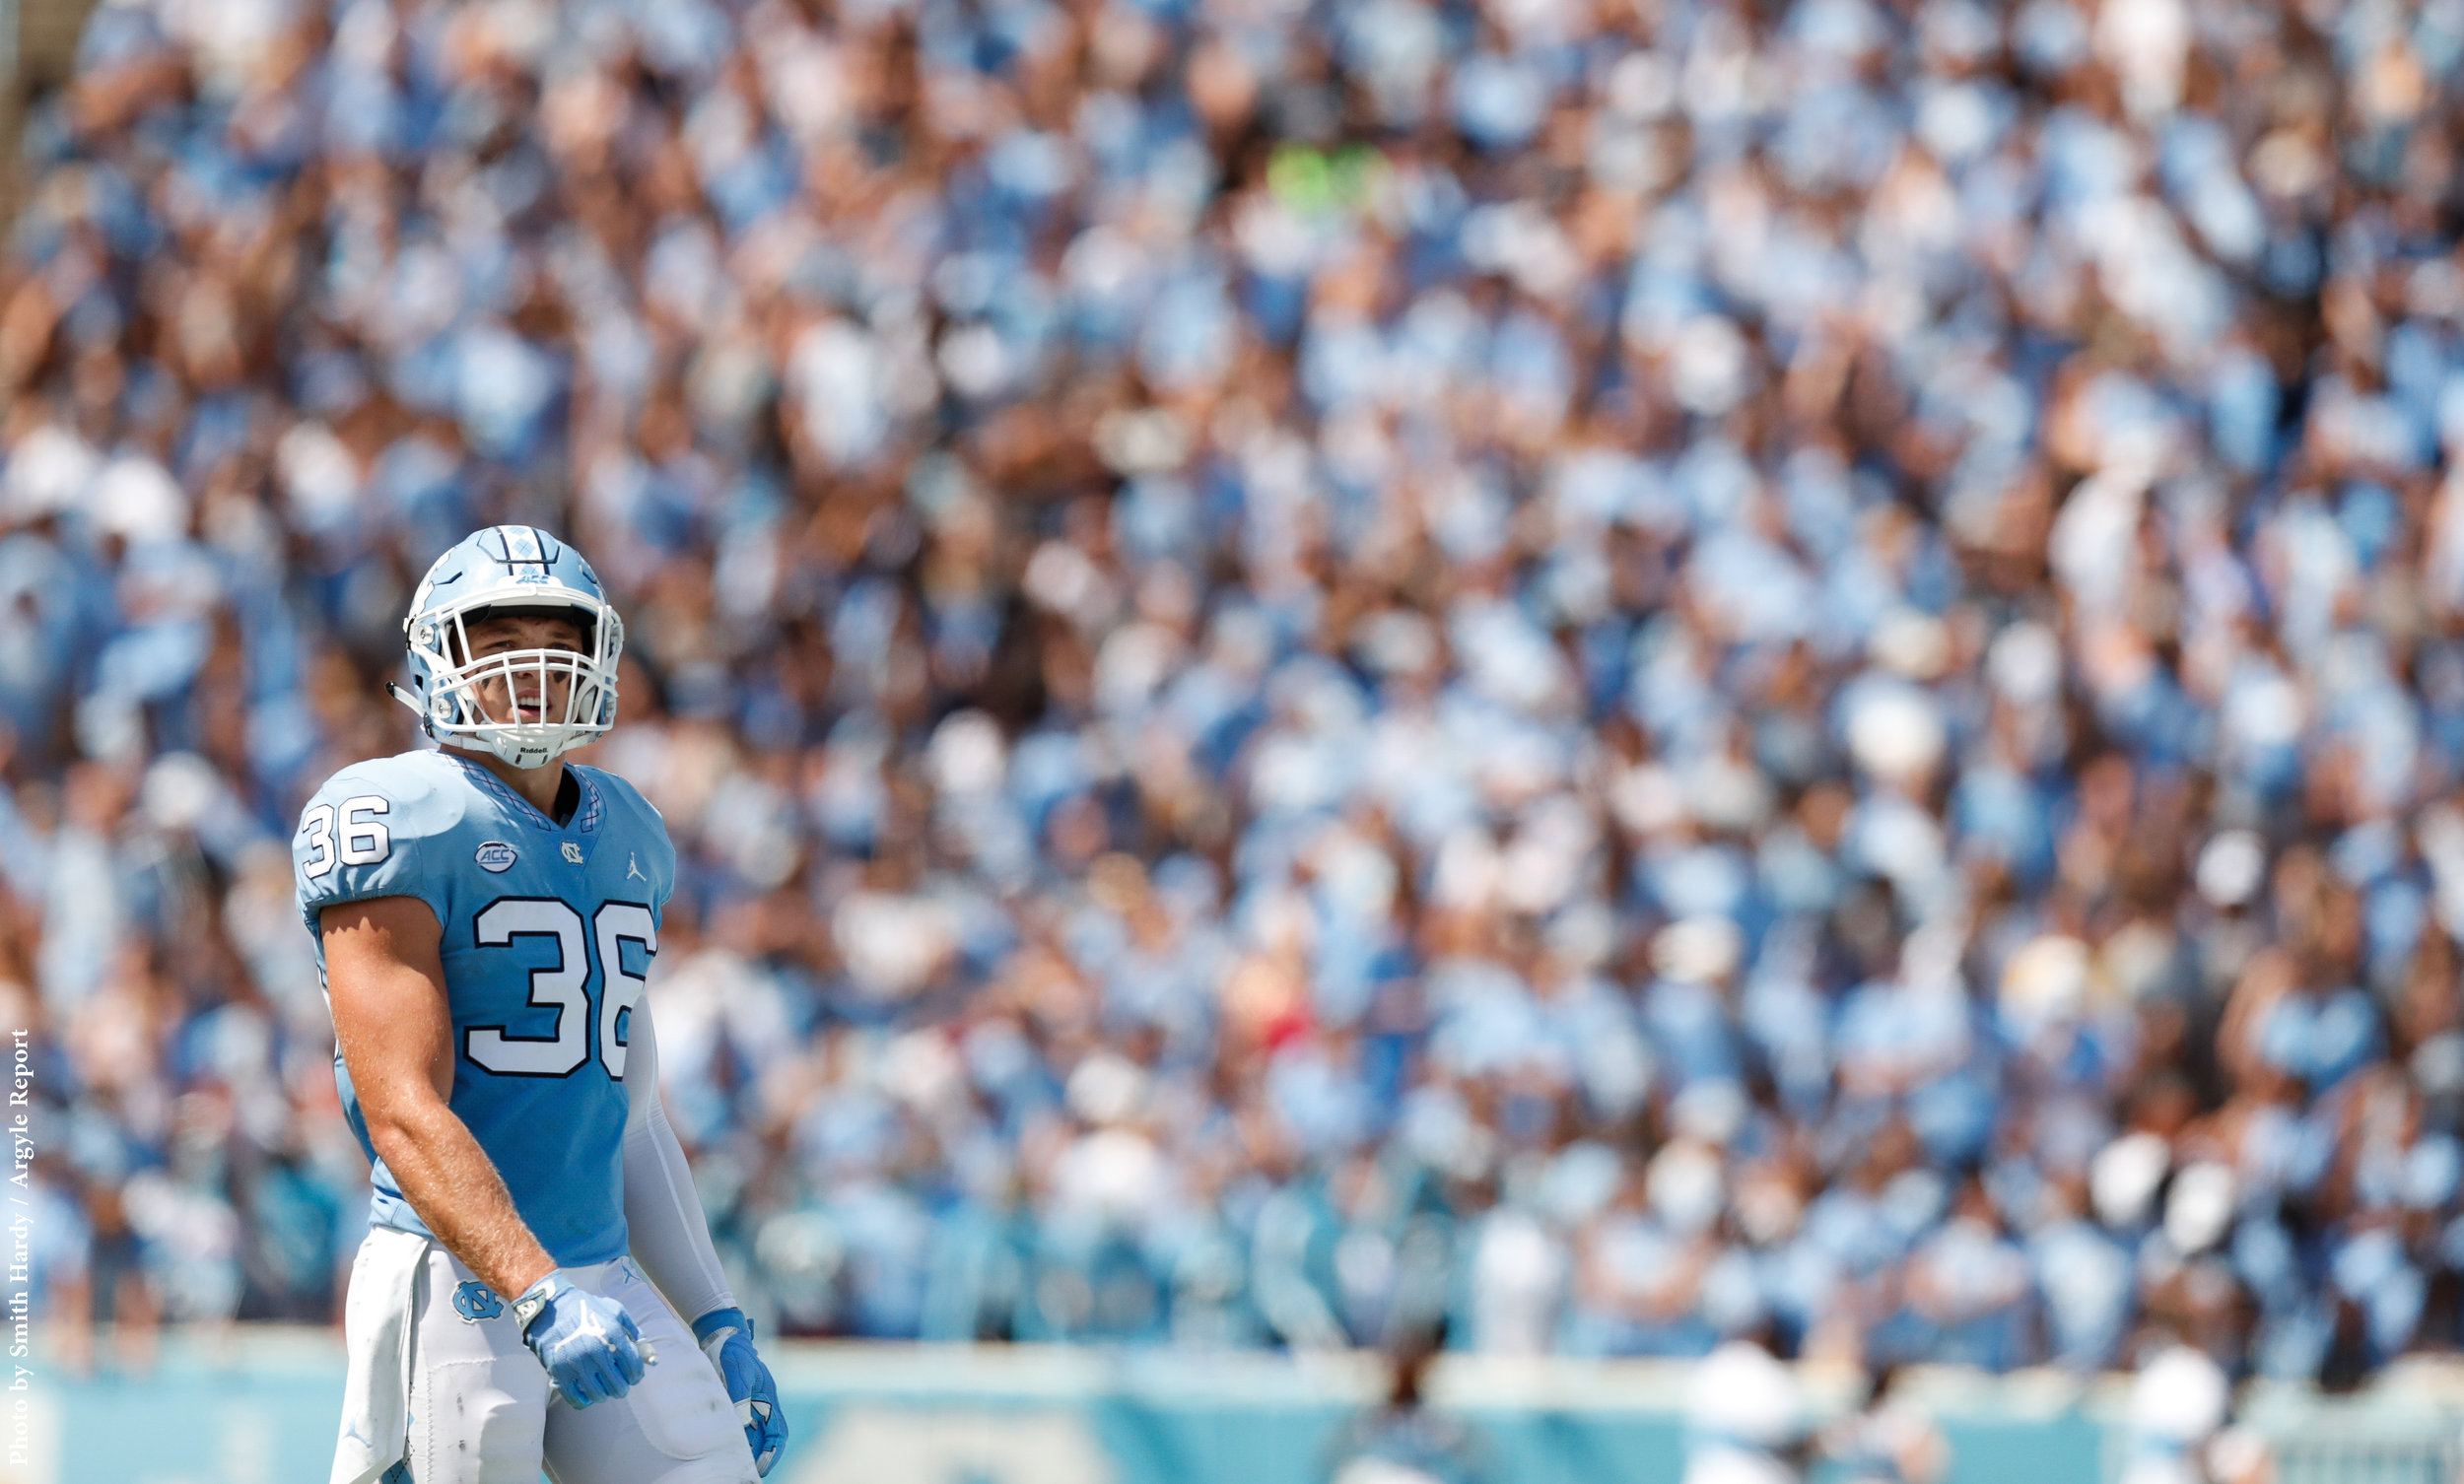 Tarheels vs Cards Football 2017 (3 of 4).jpg